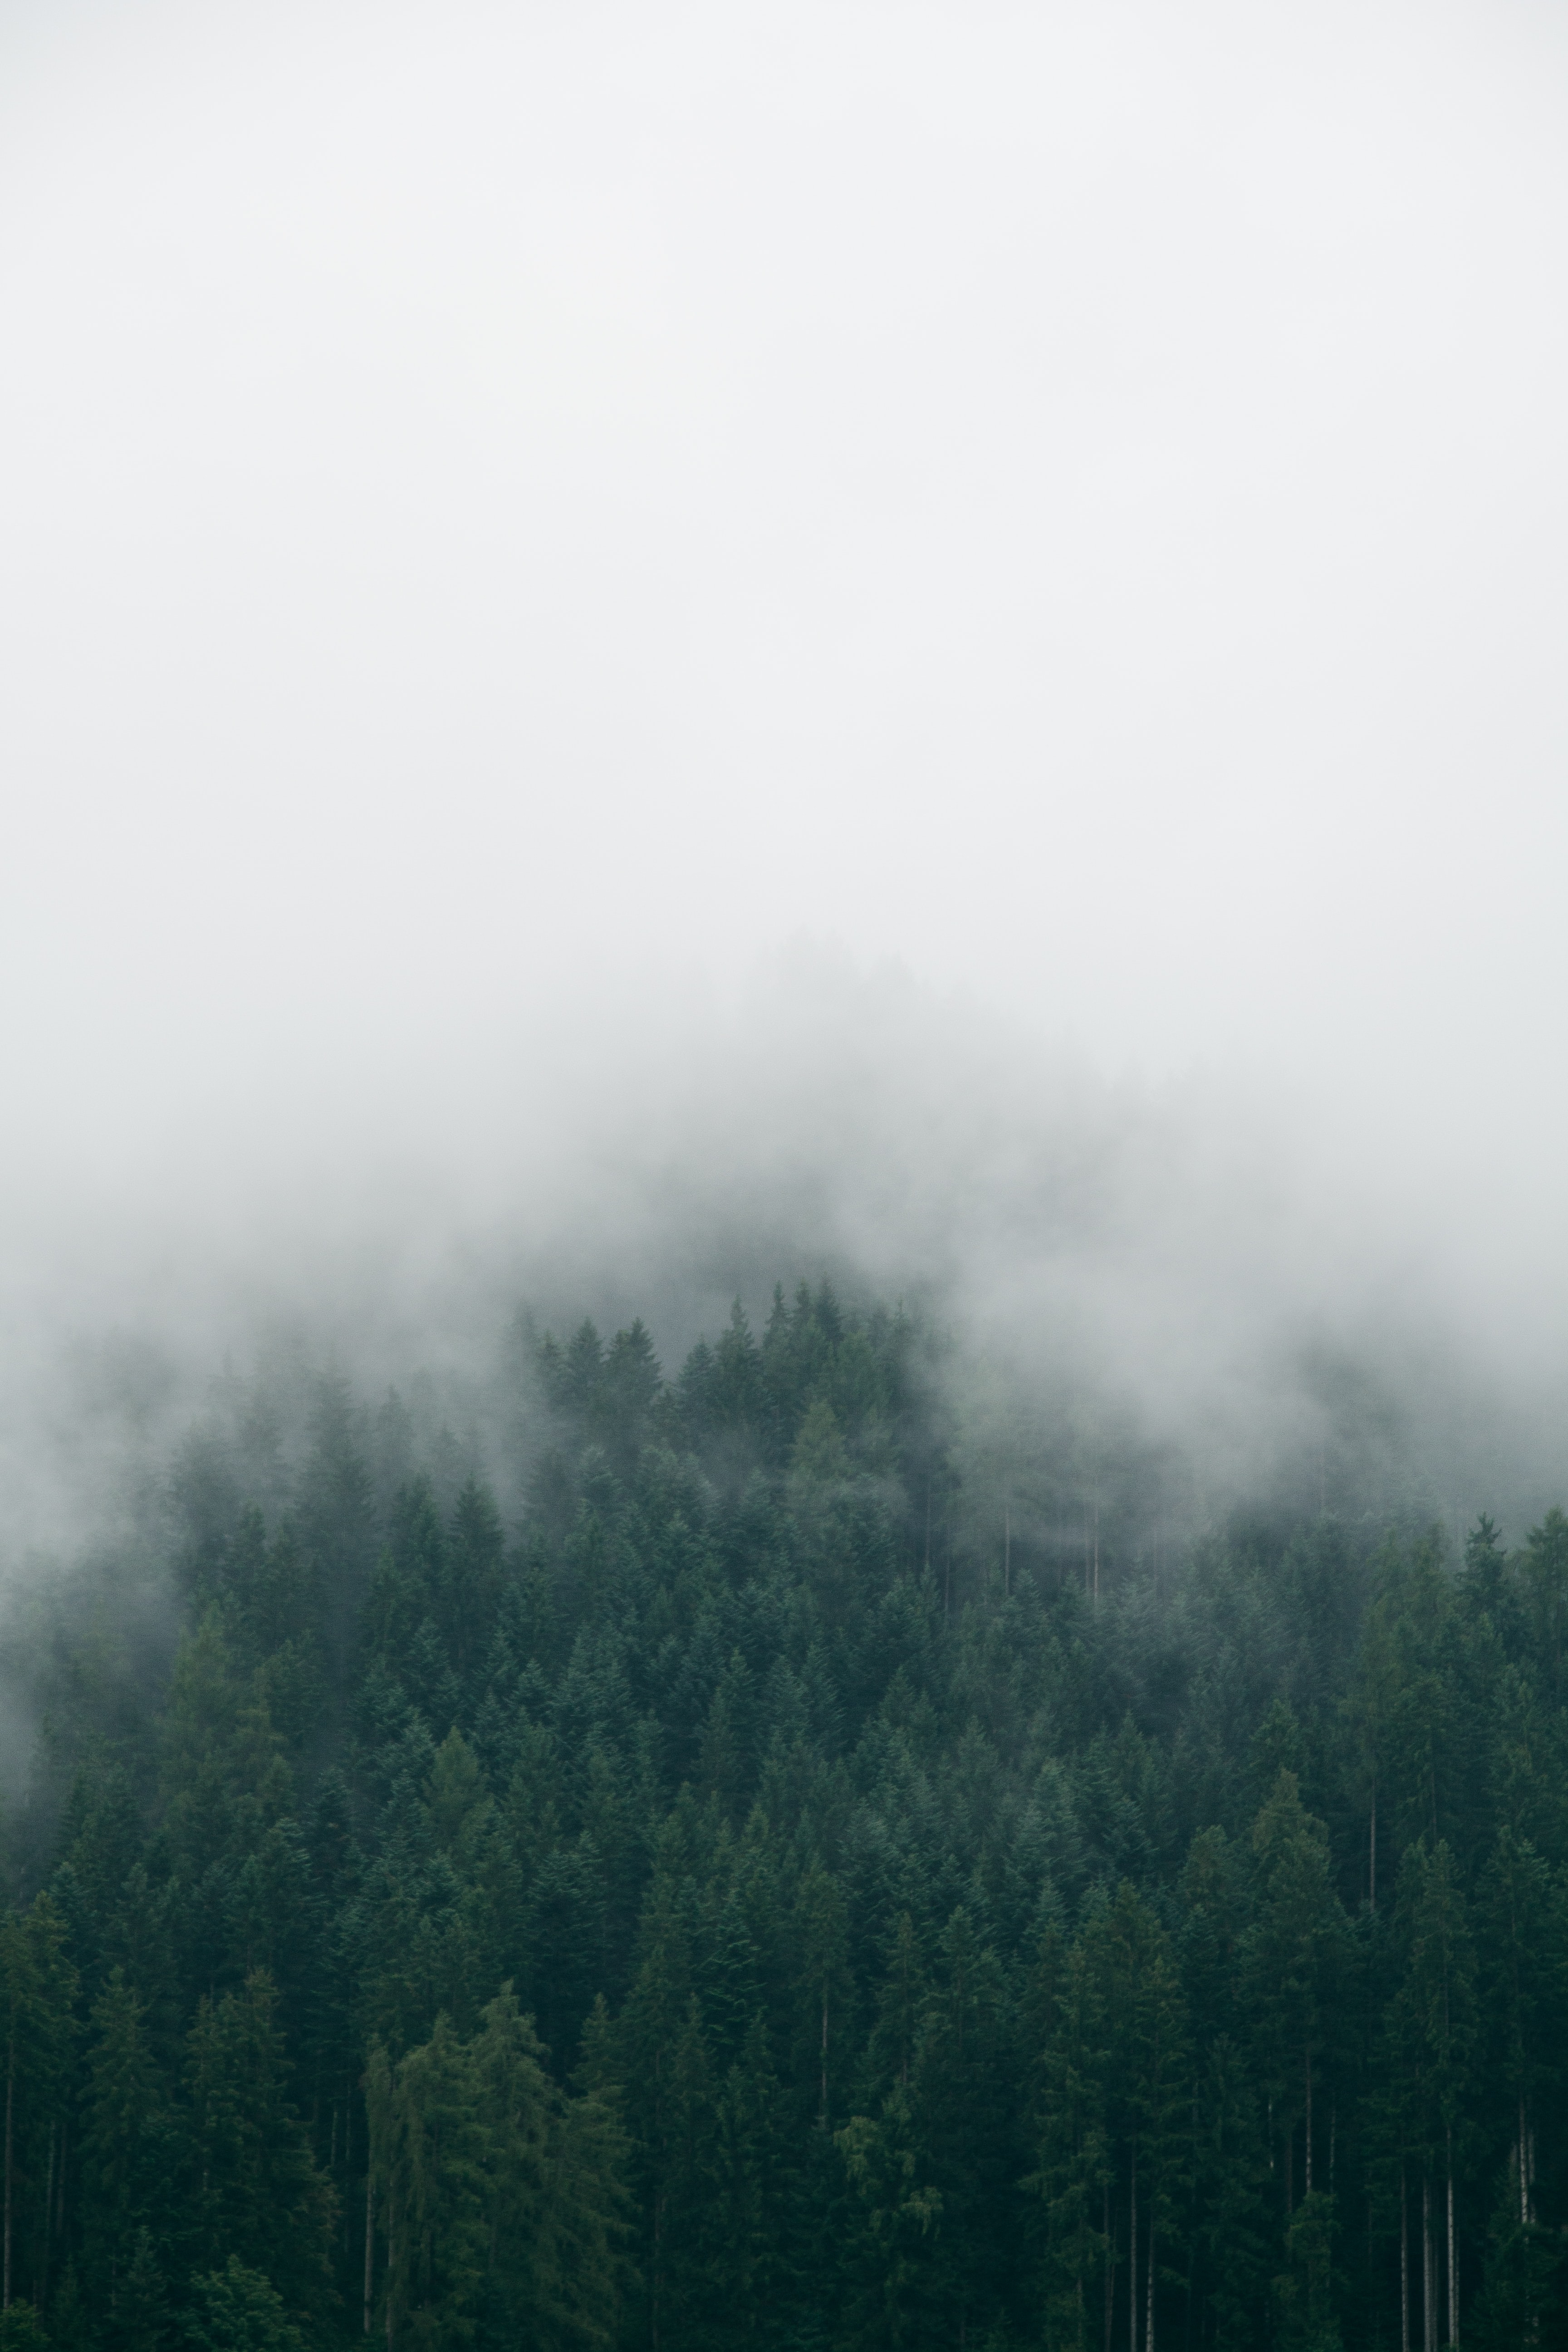 forest with foggy weather